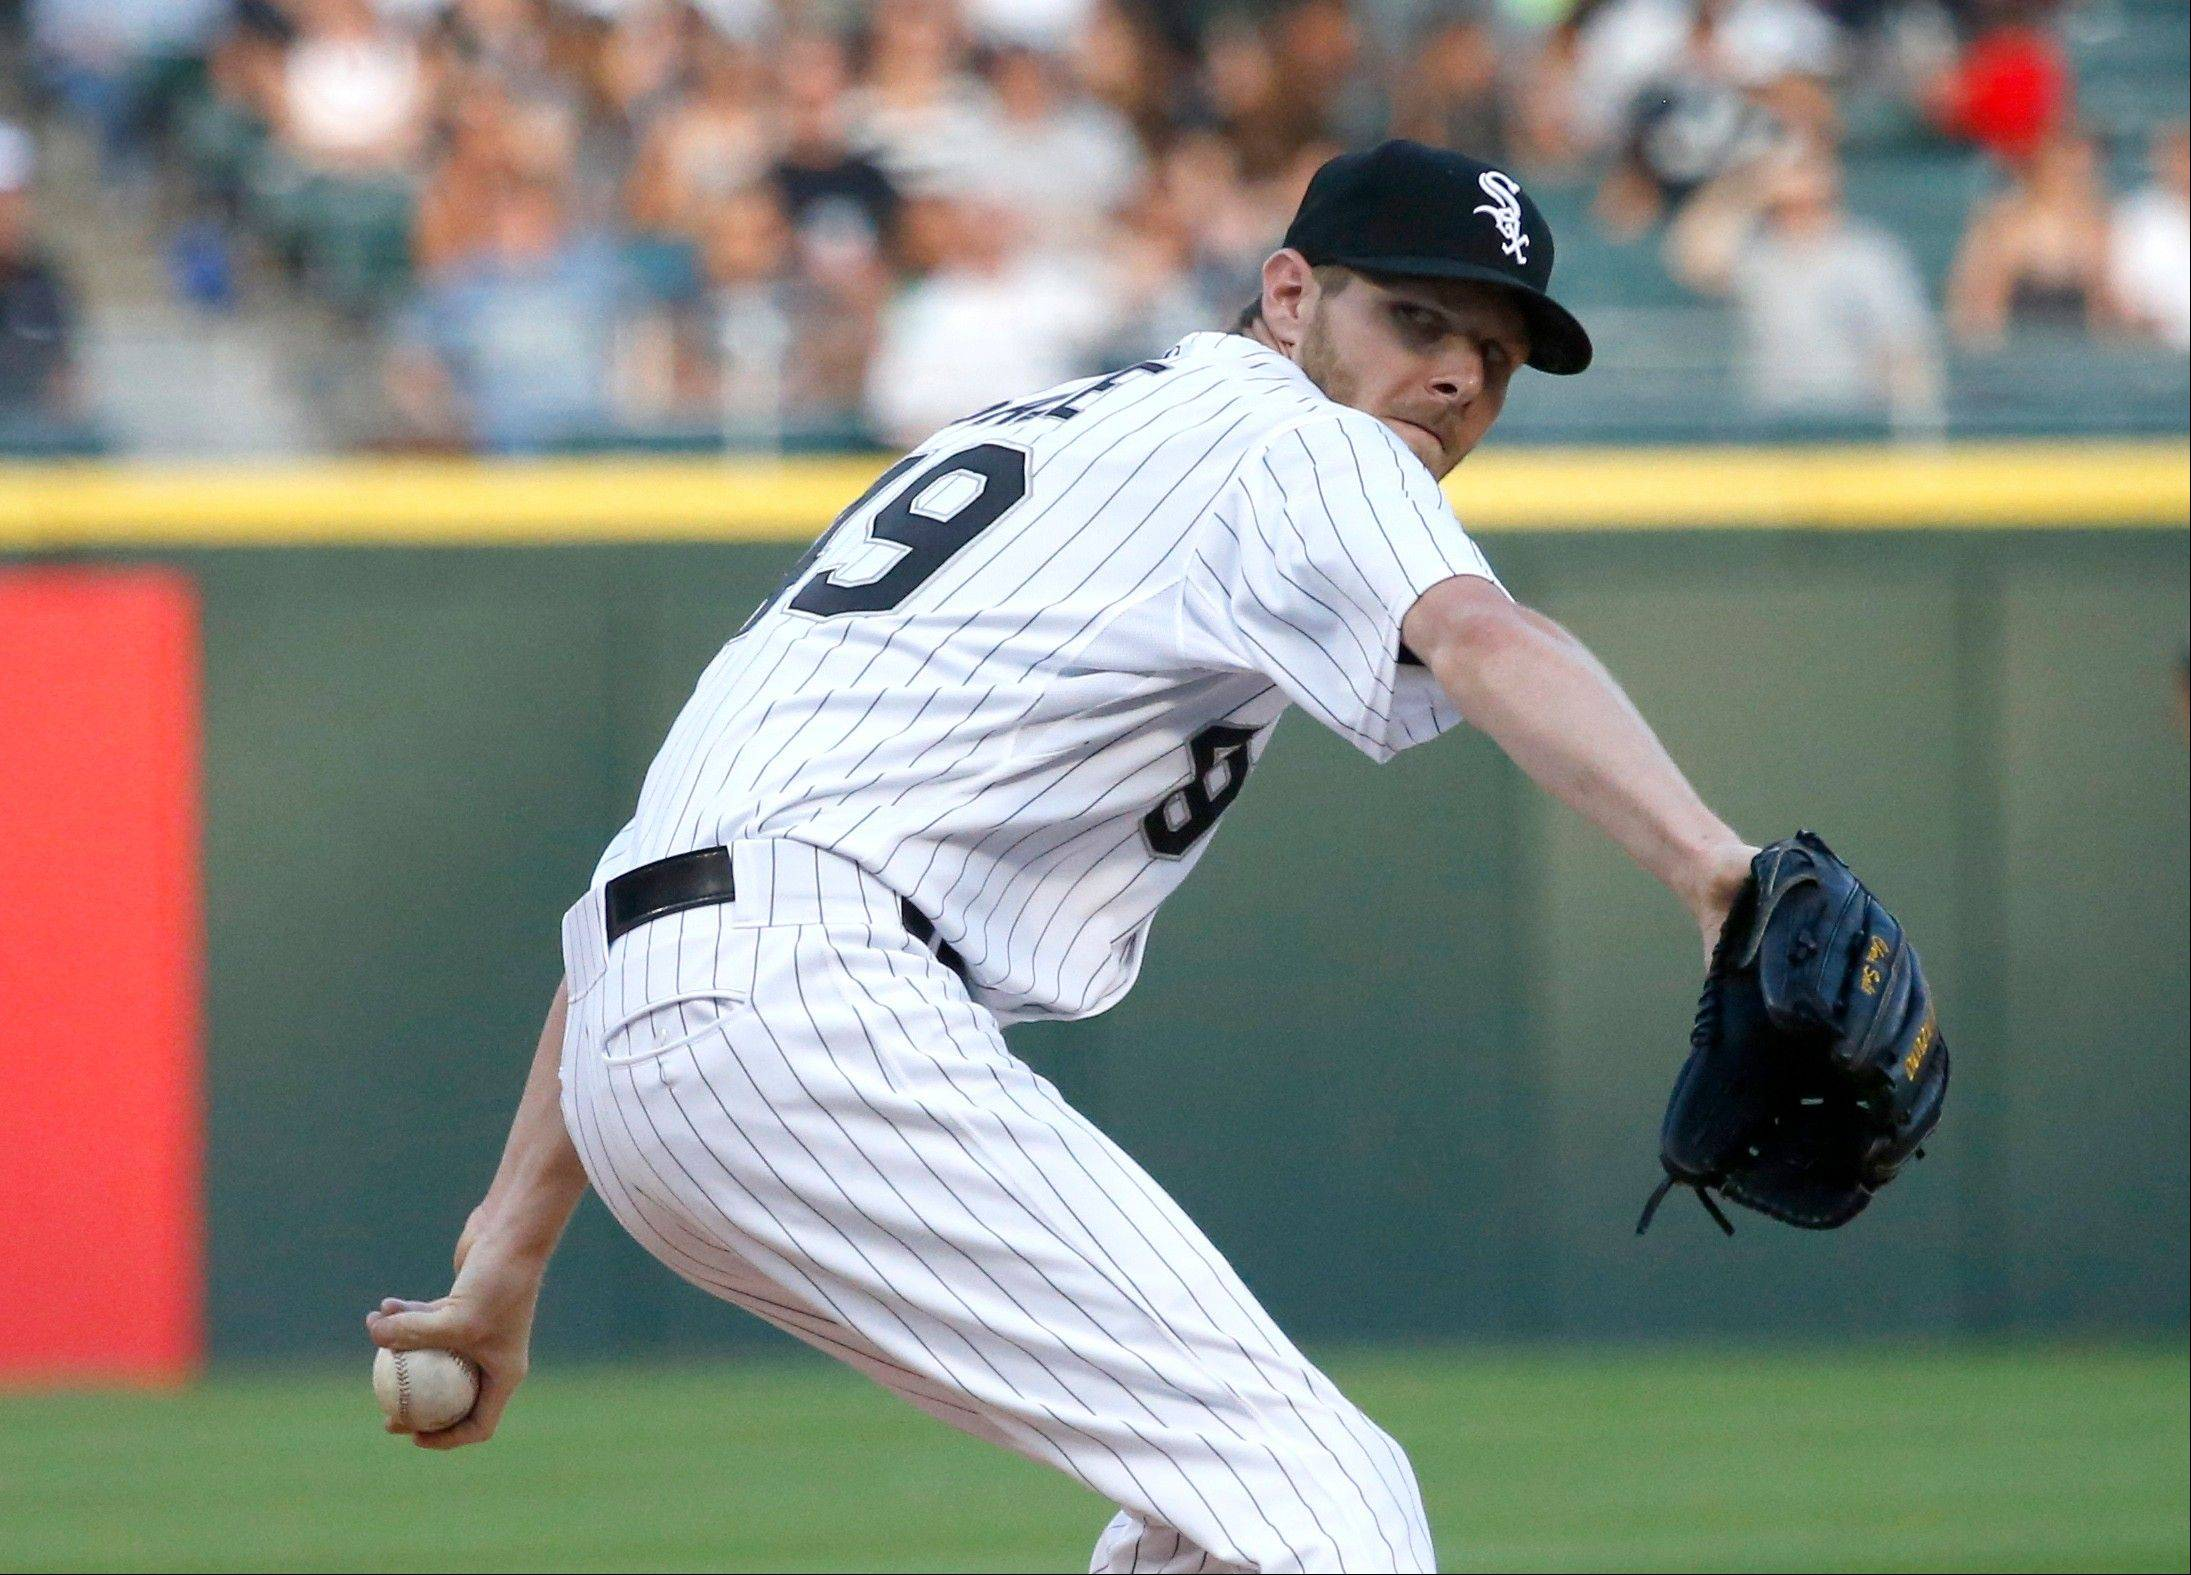 White Sox starting pitcher Chris Sale was not happy about having to issue an intentional walk to the Tigers' Miguel Cabrera in Monday night's loss.